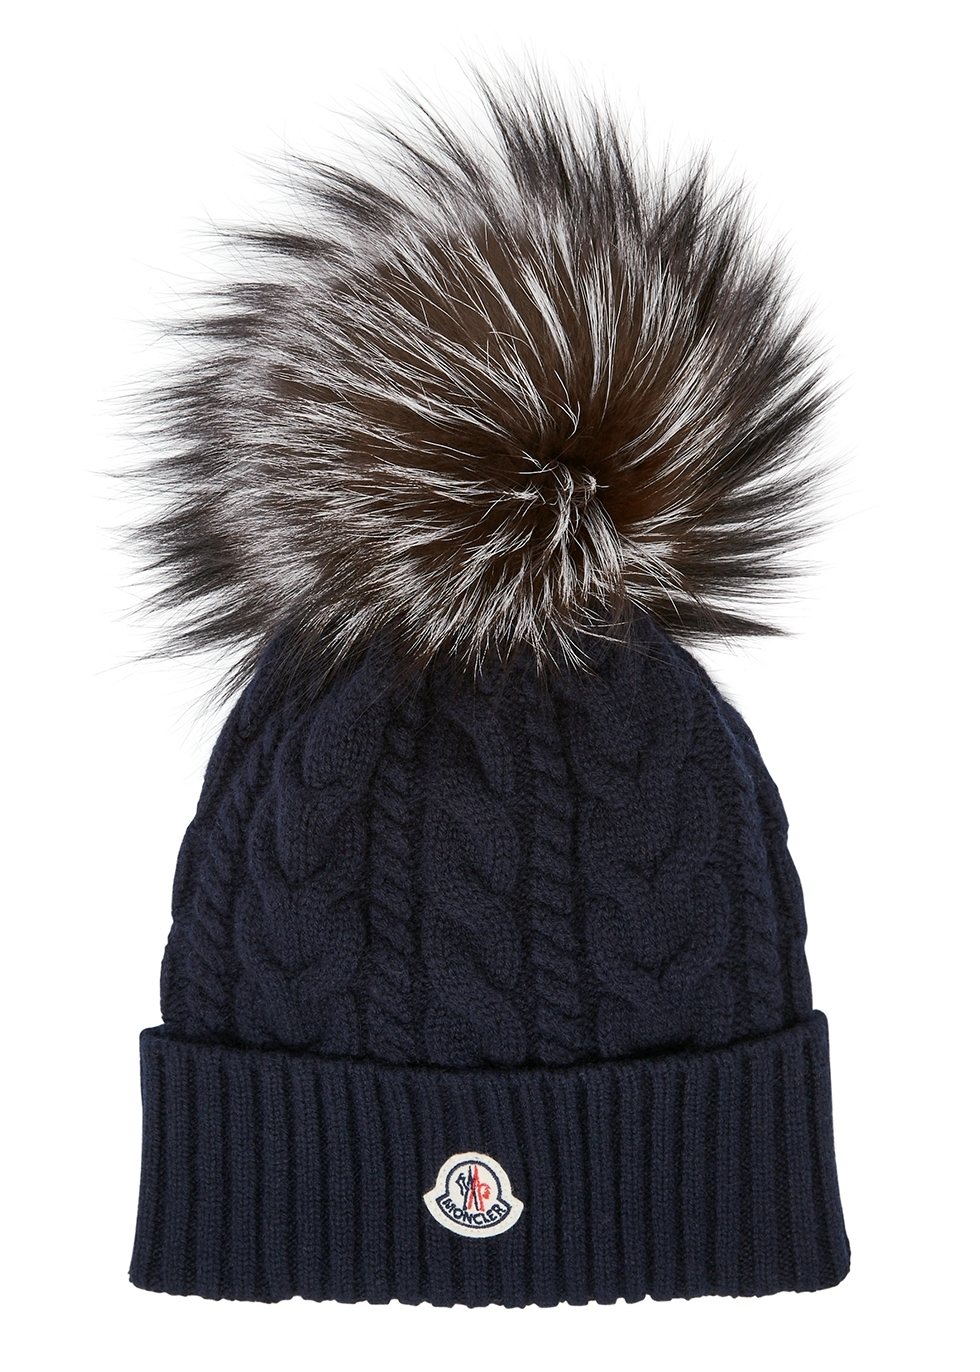 b6b7f46f9 Designer Beanies - Women s Luxury Hats - Harvey Nichols